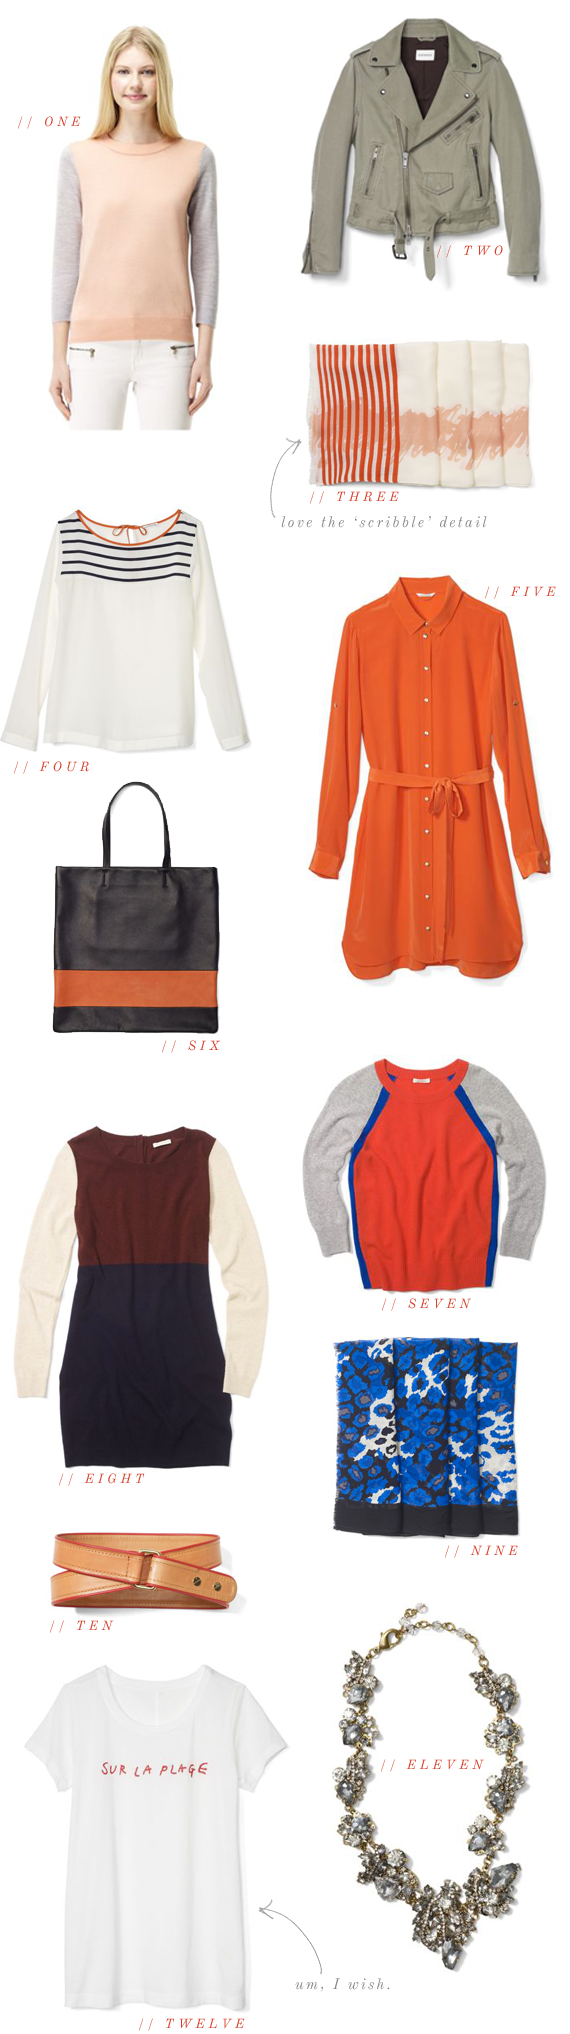 club monaco picks | via vmac+cheese